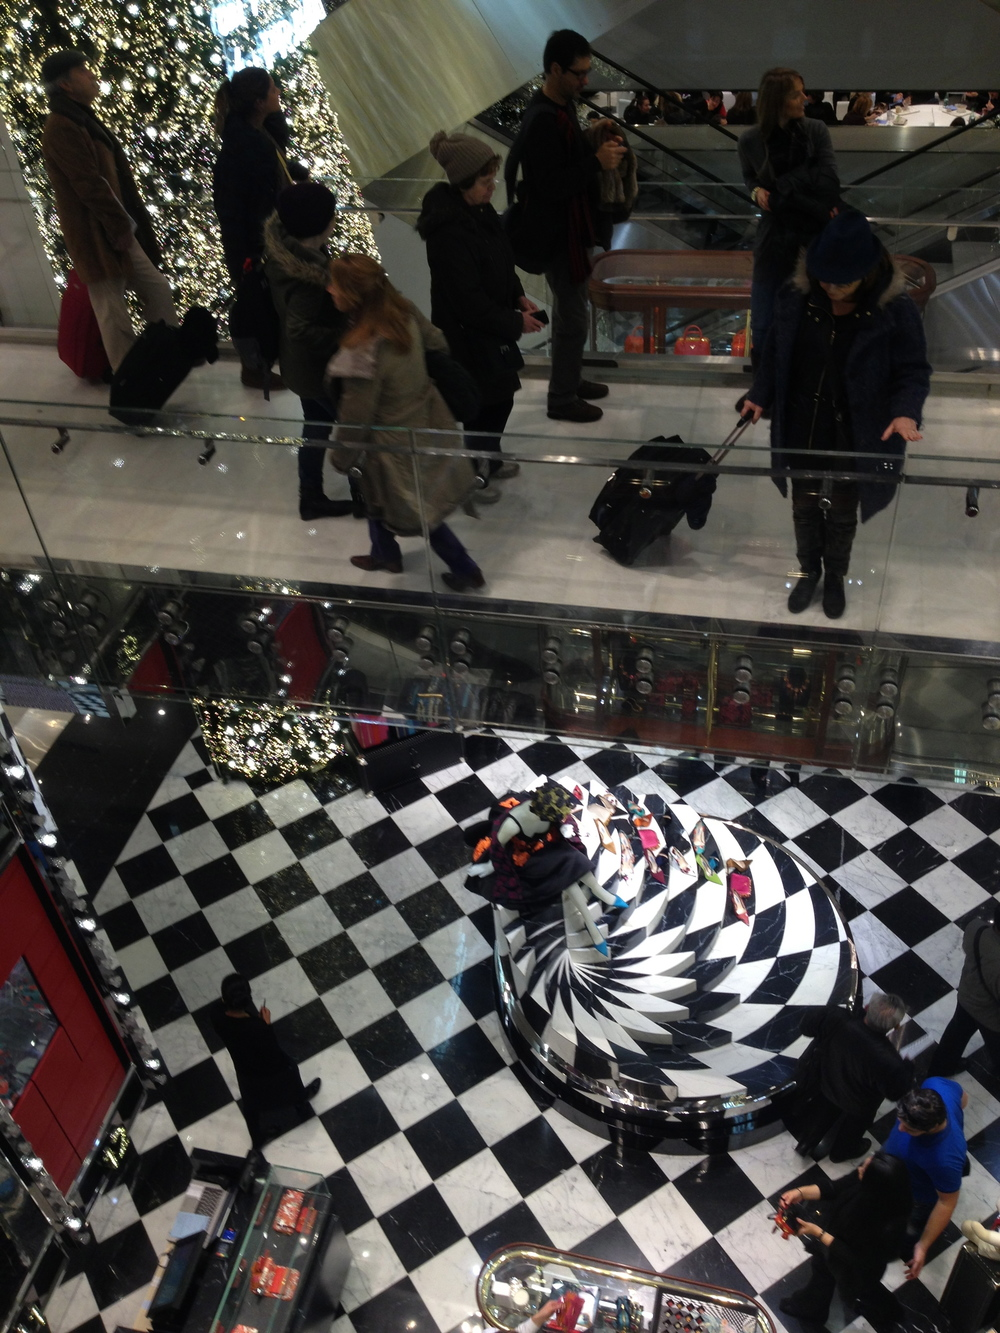 The confusing interior of Printemps